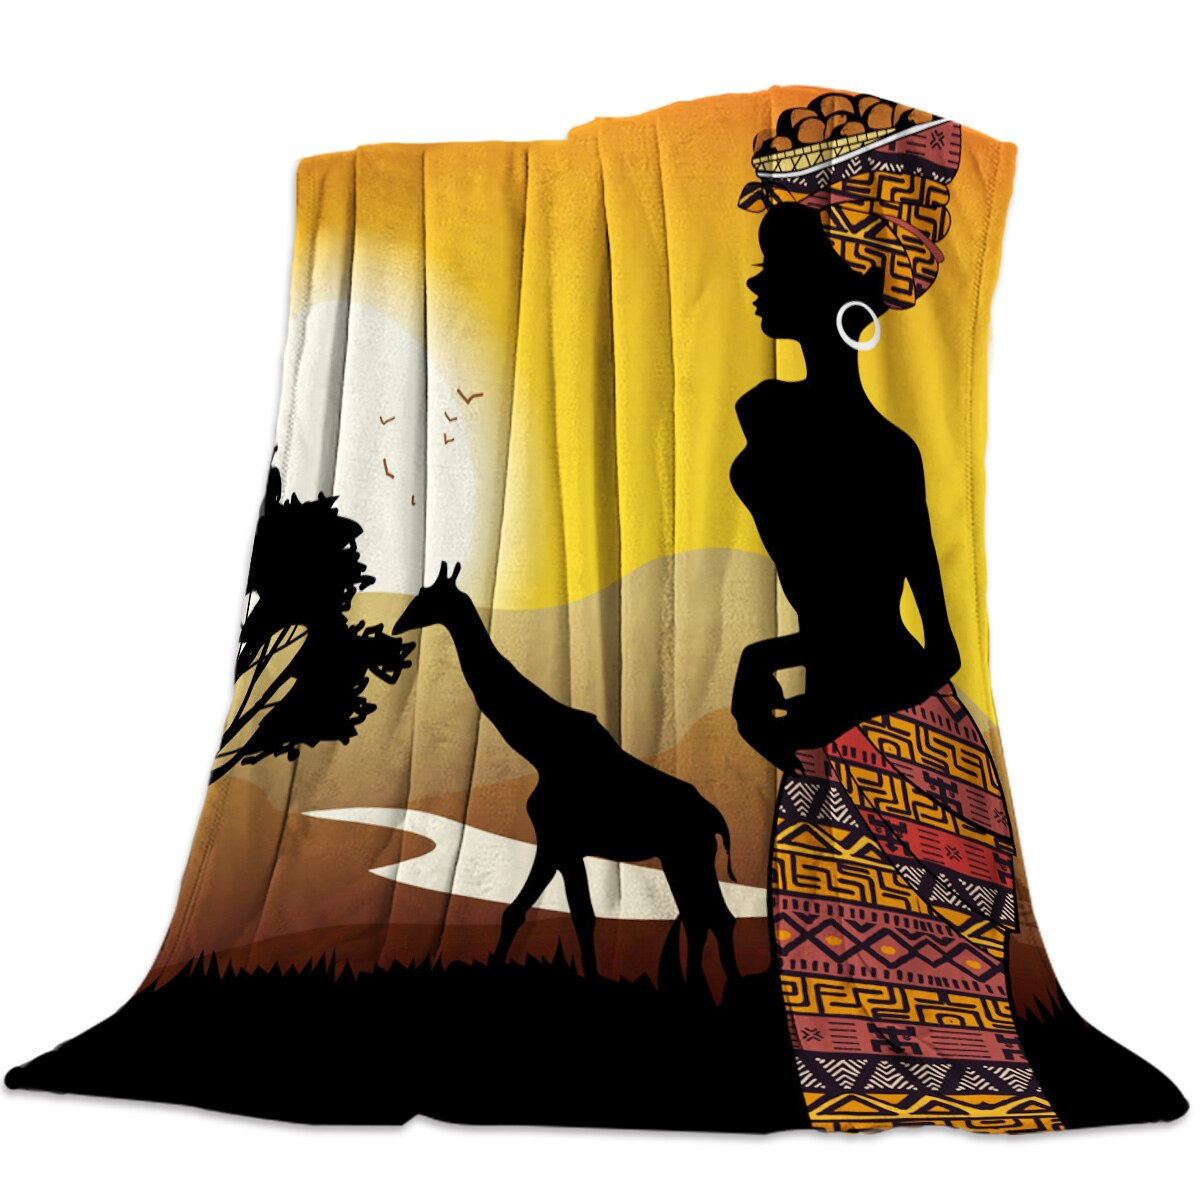 African Woman Giraffe Silhouette Warm Blanket Office Rest Sofa Couch Bedding Cover Bedsheet Student Home Bedspread